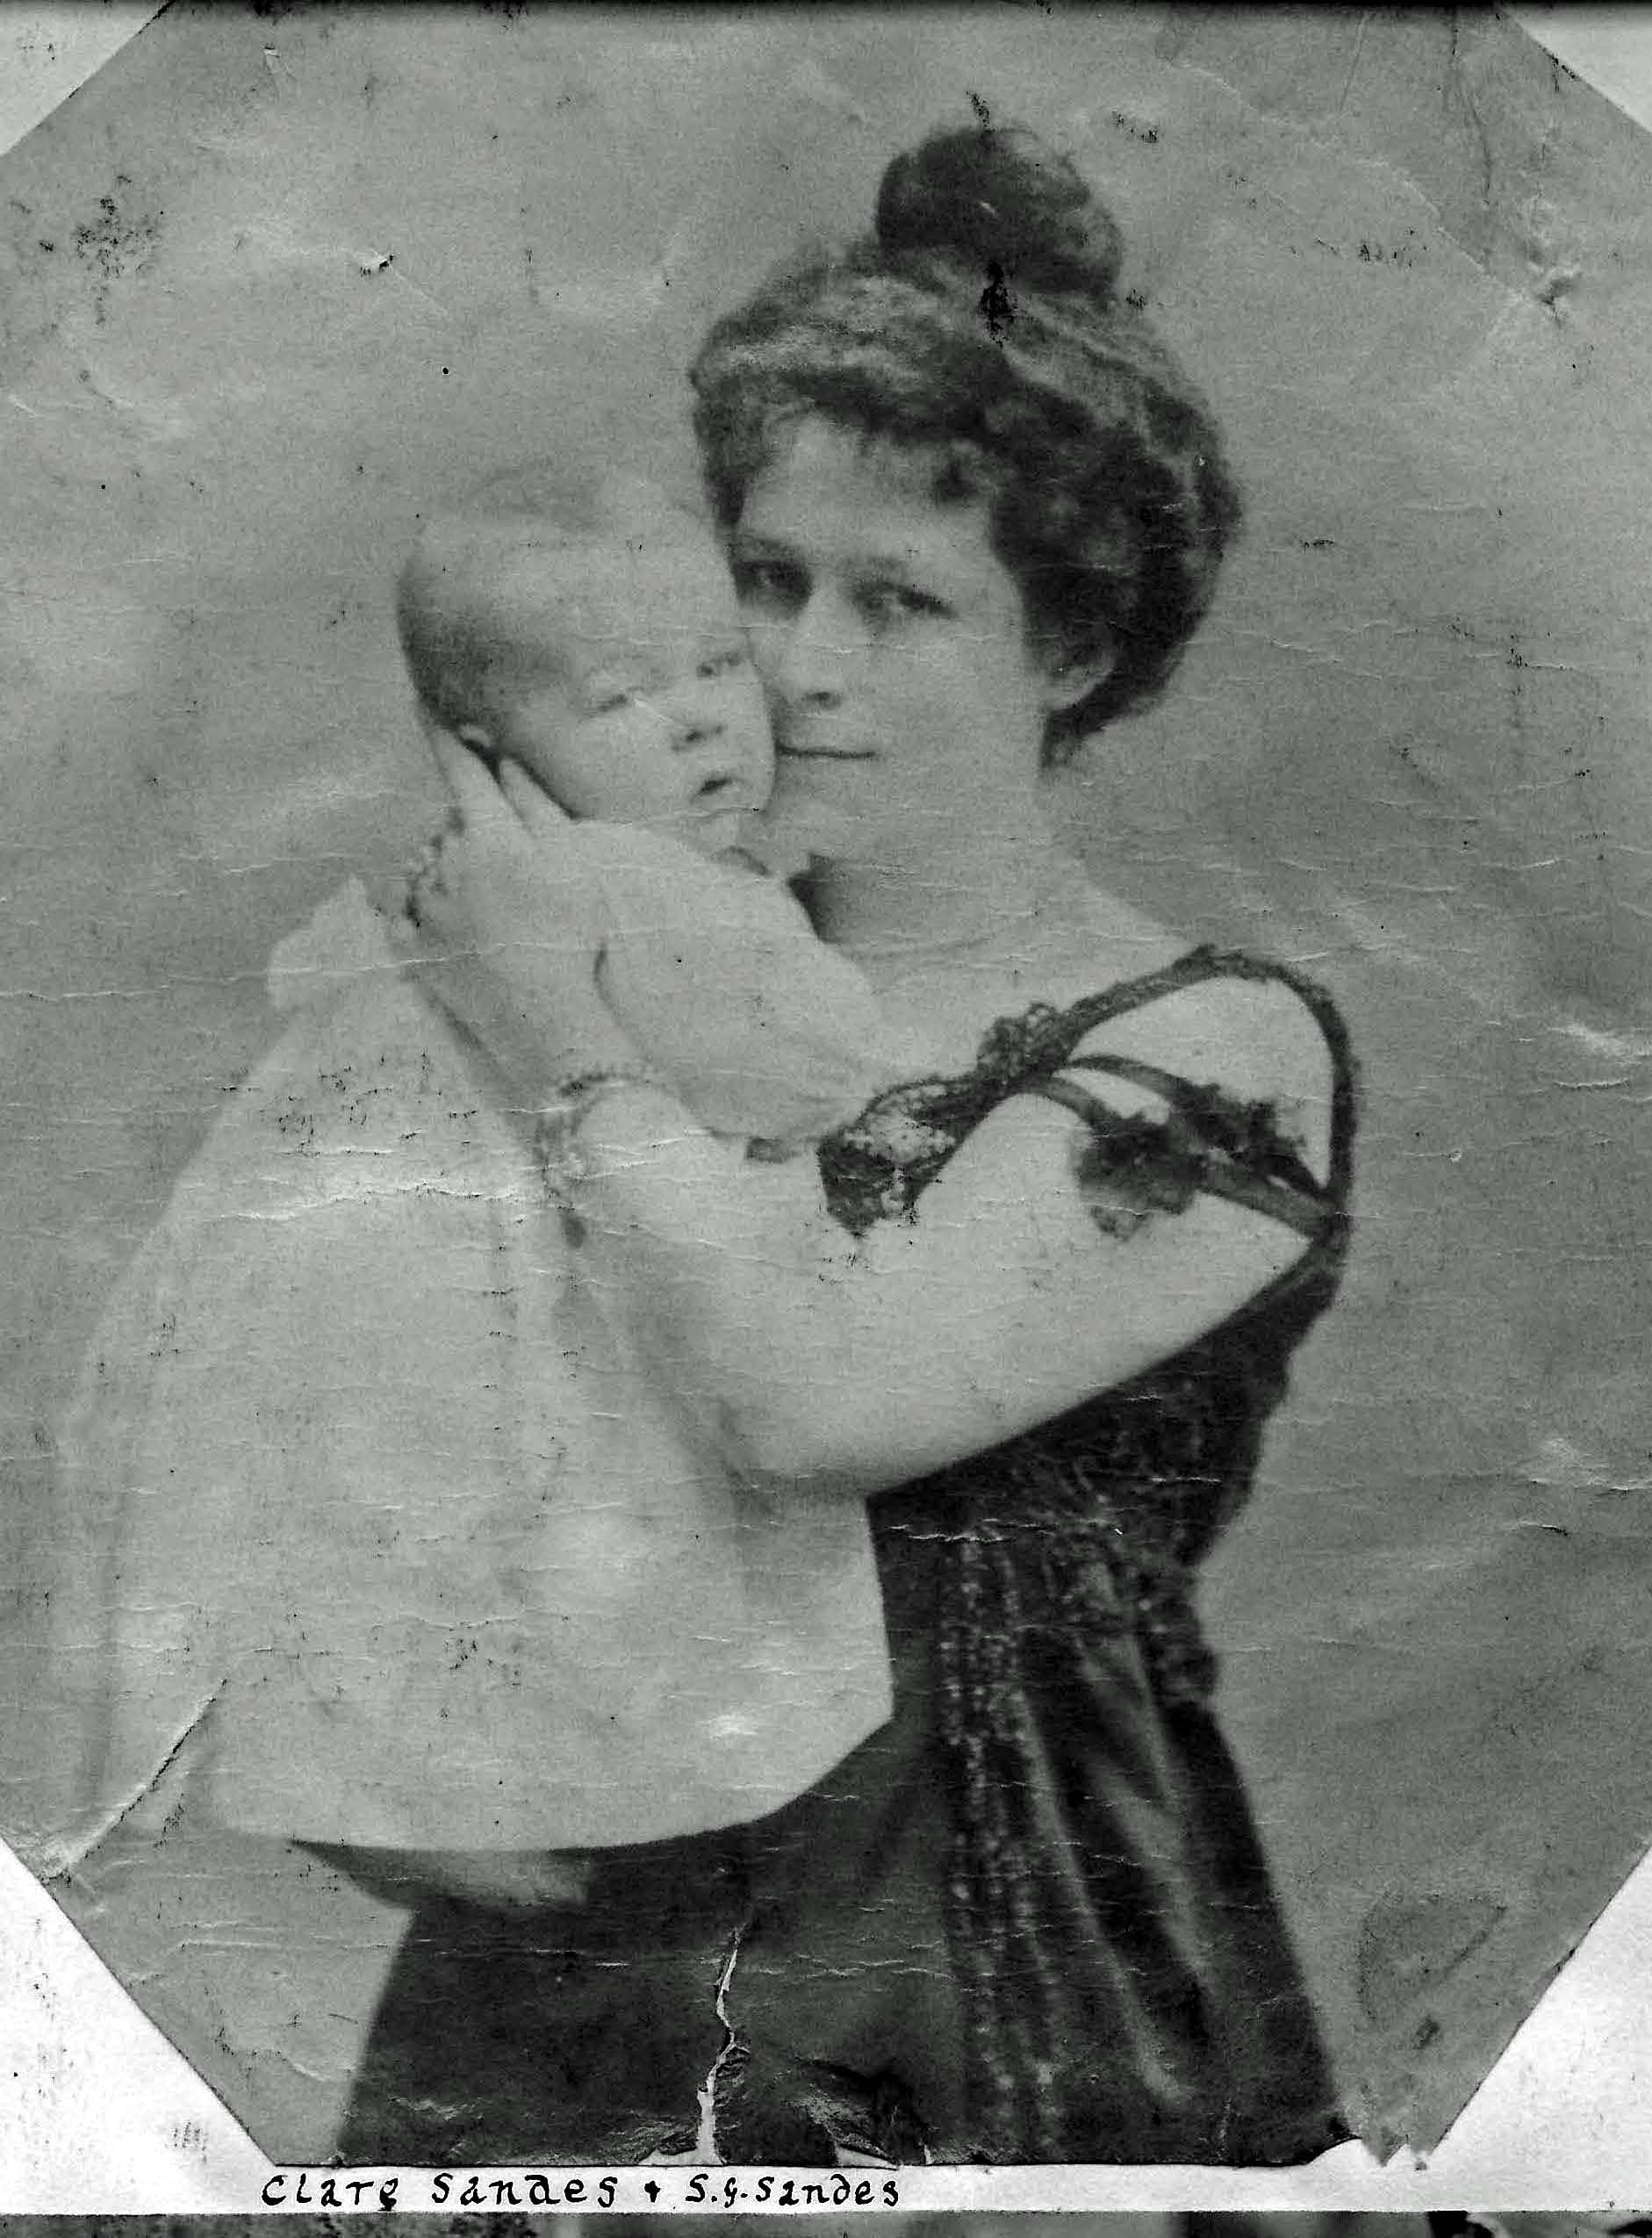 Clare Berry with her son Stephen Sandes